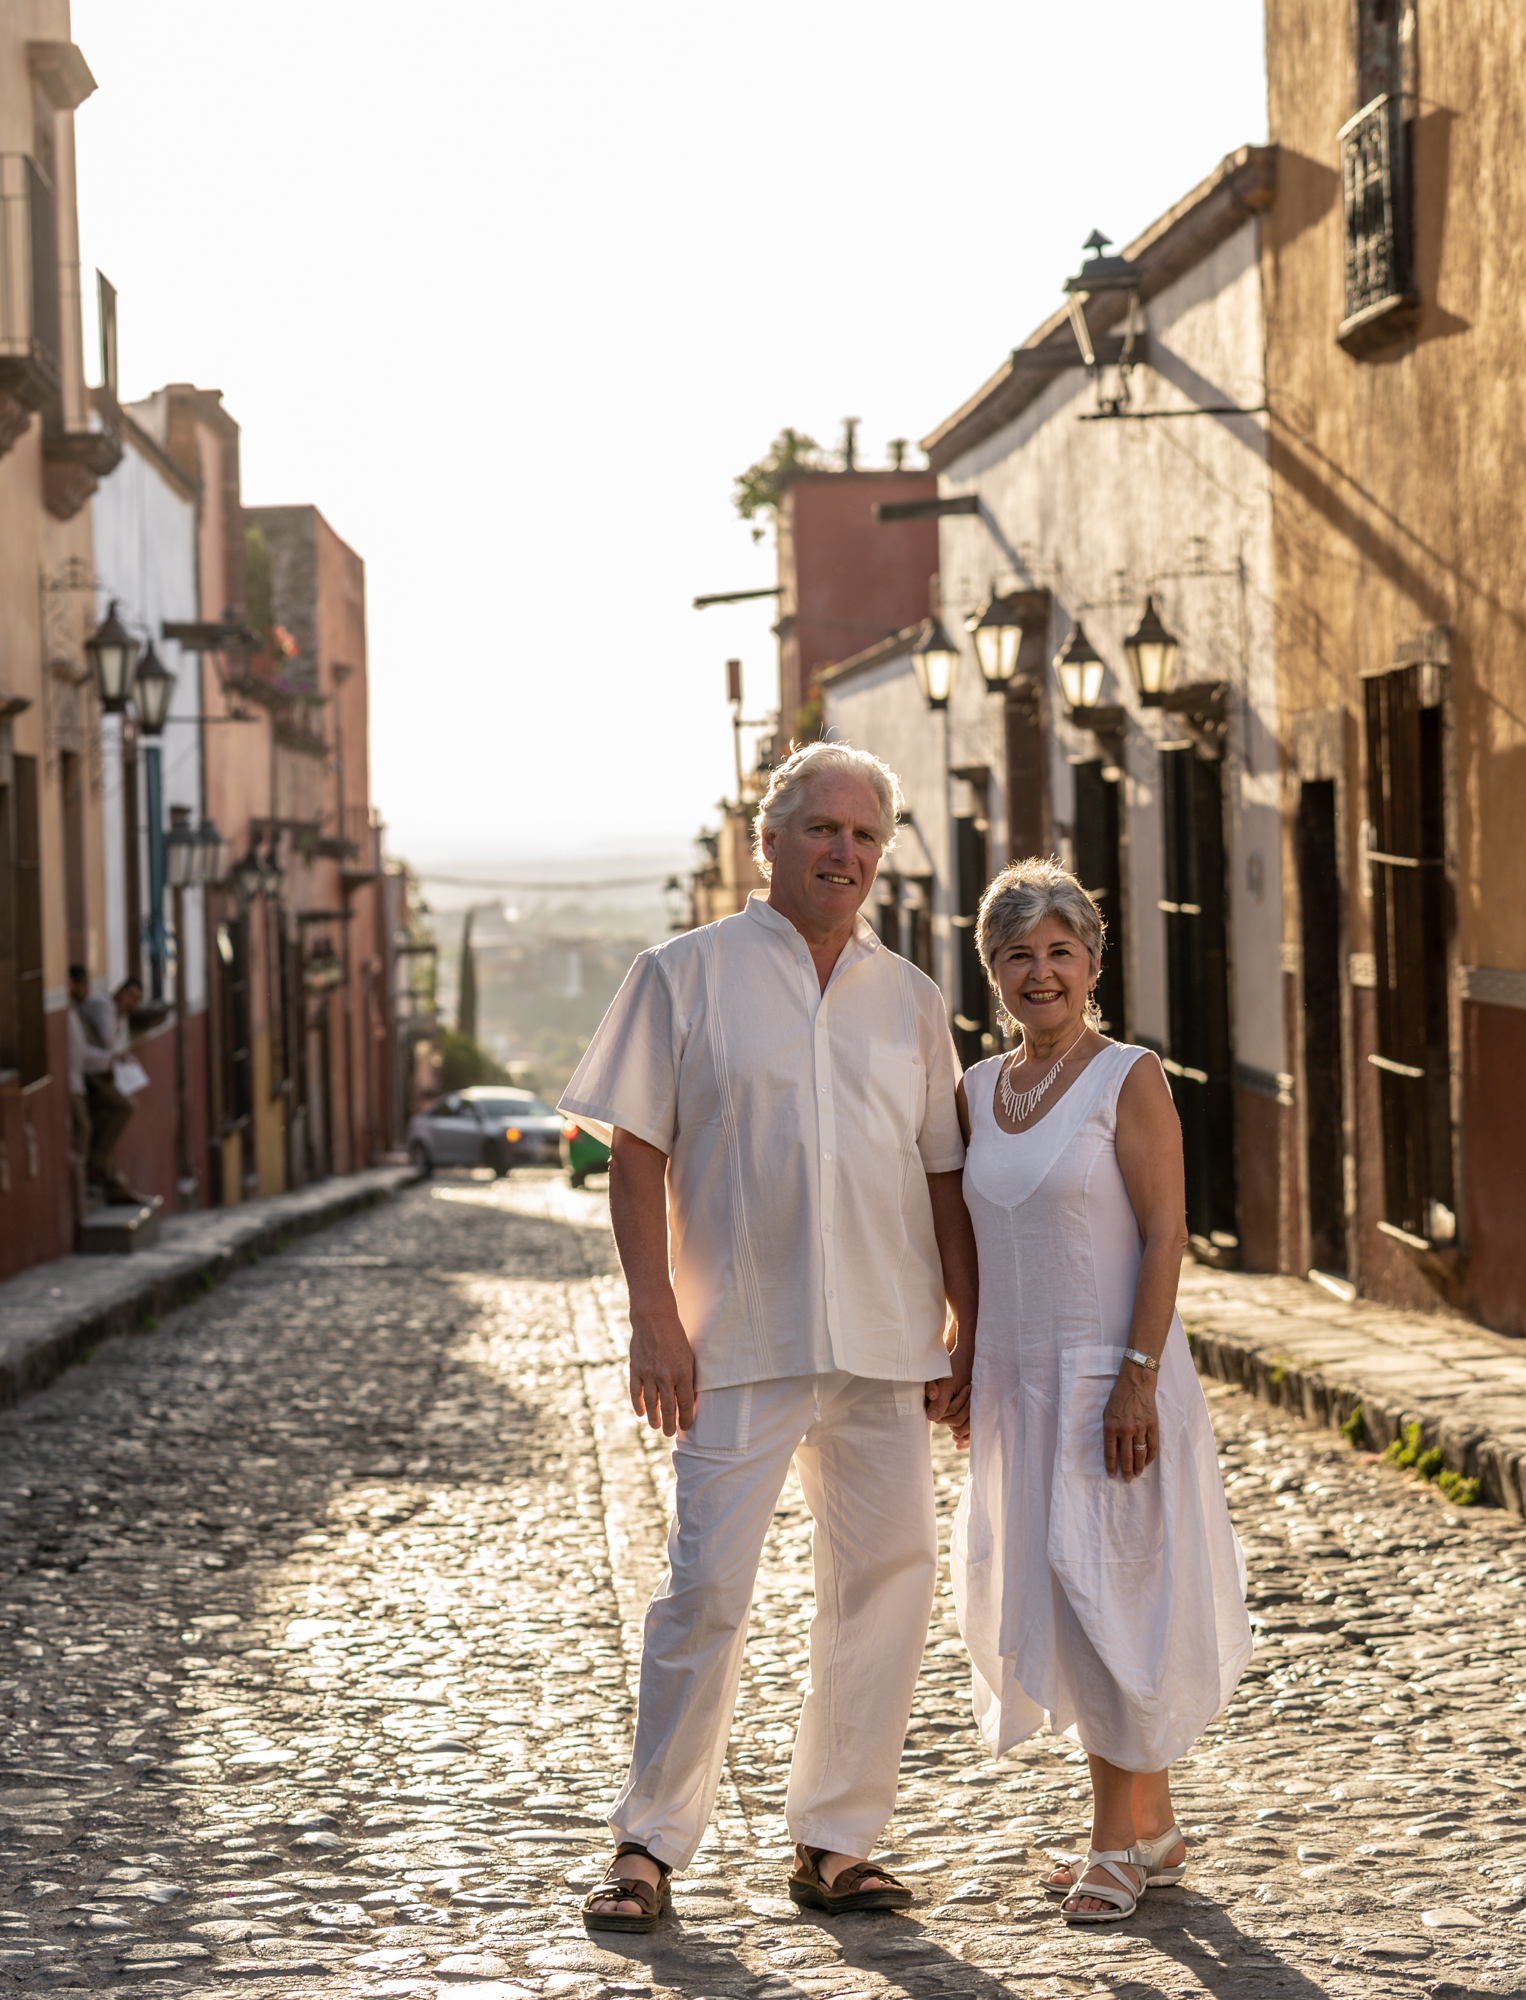 Photoshoot session in San Miguel de Allende with Suzanne and Leo-40.jpg